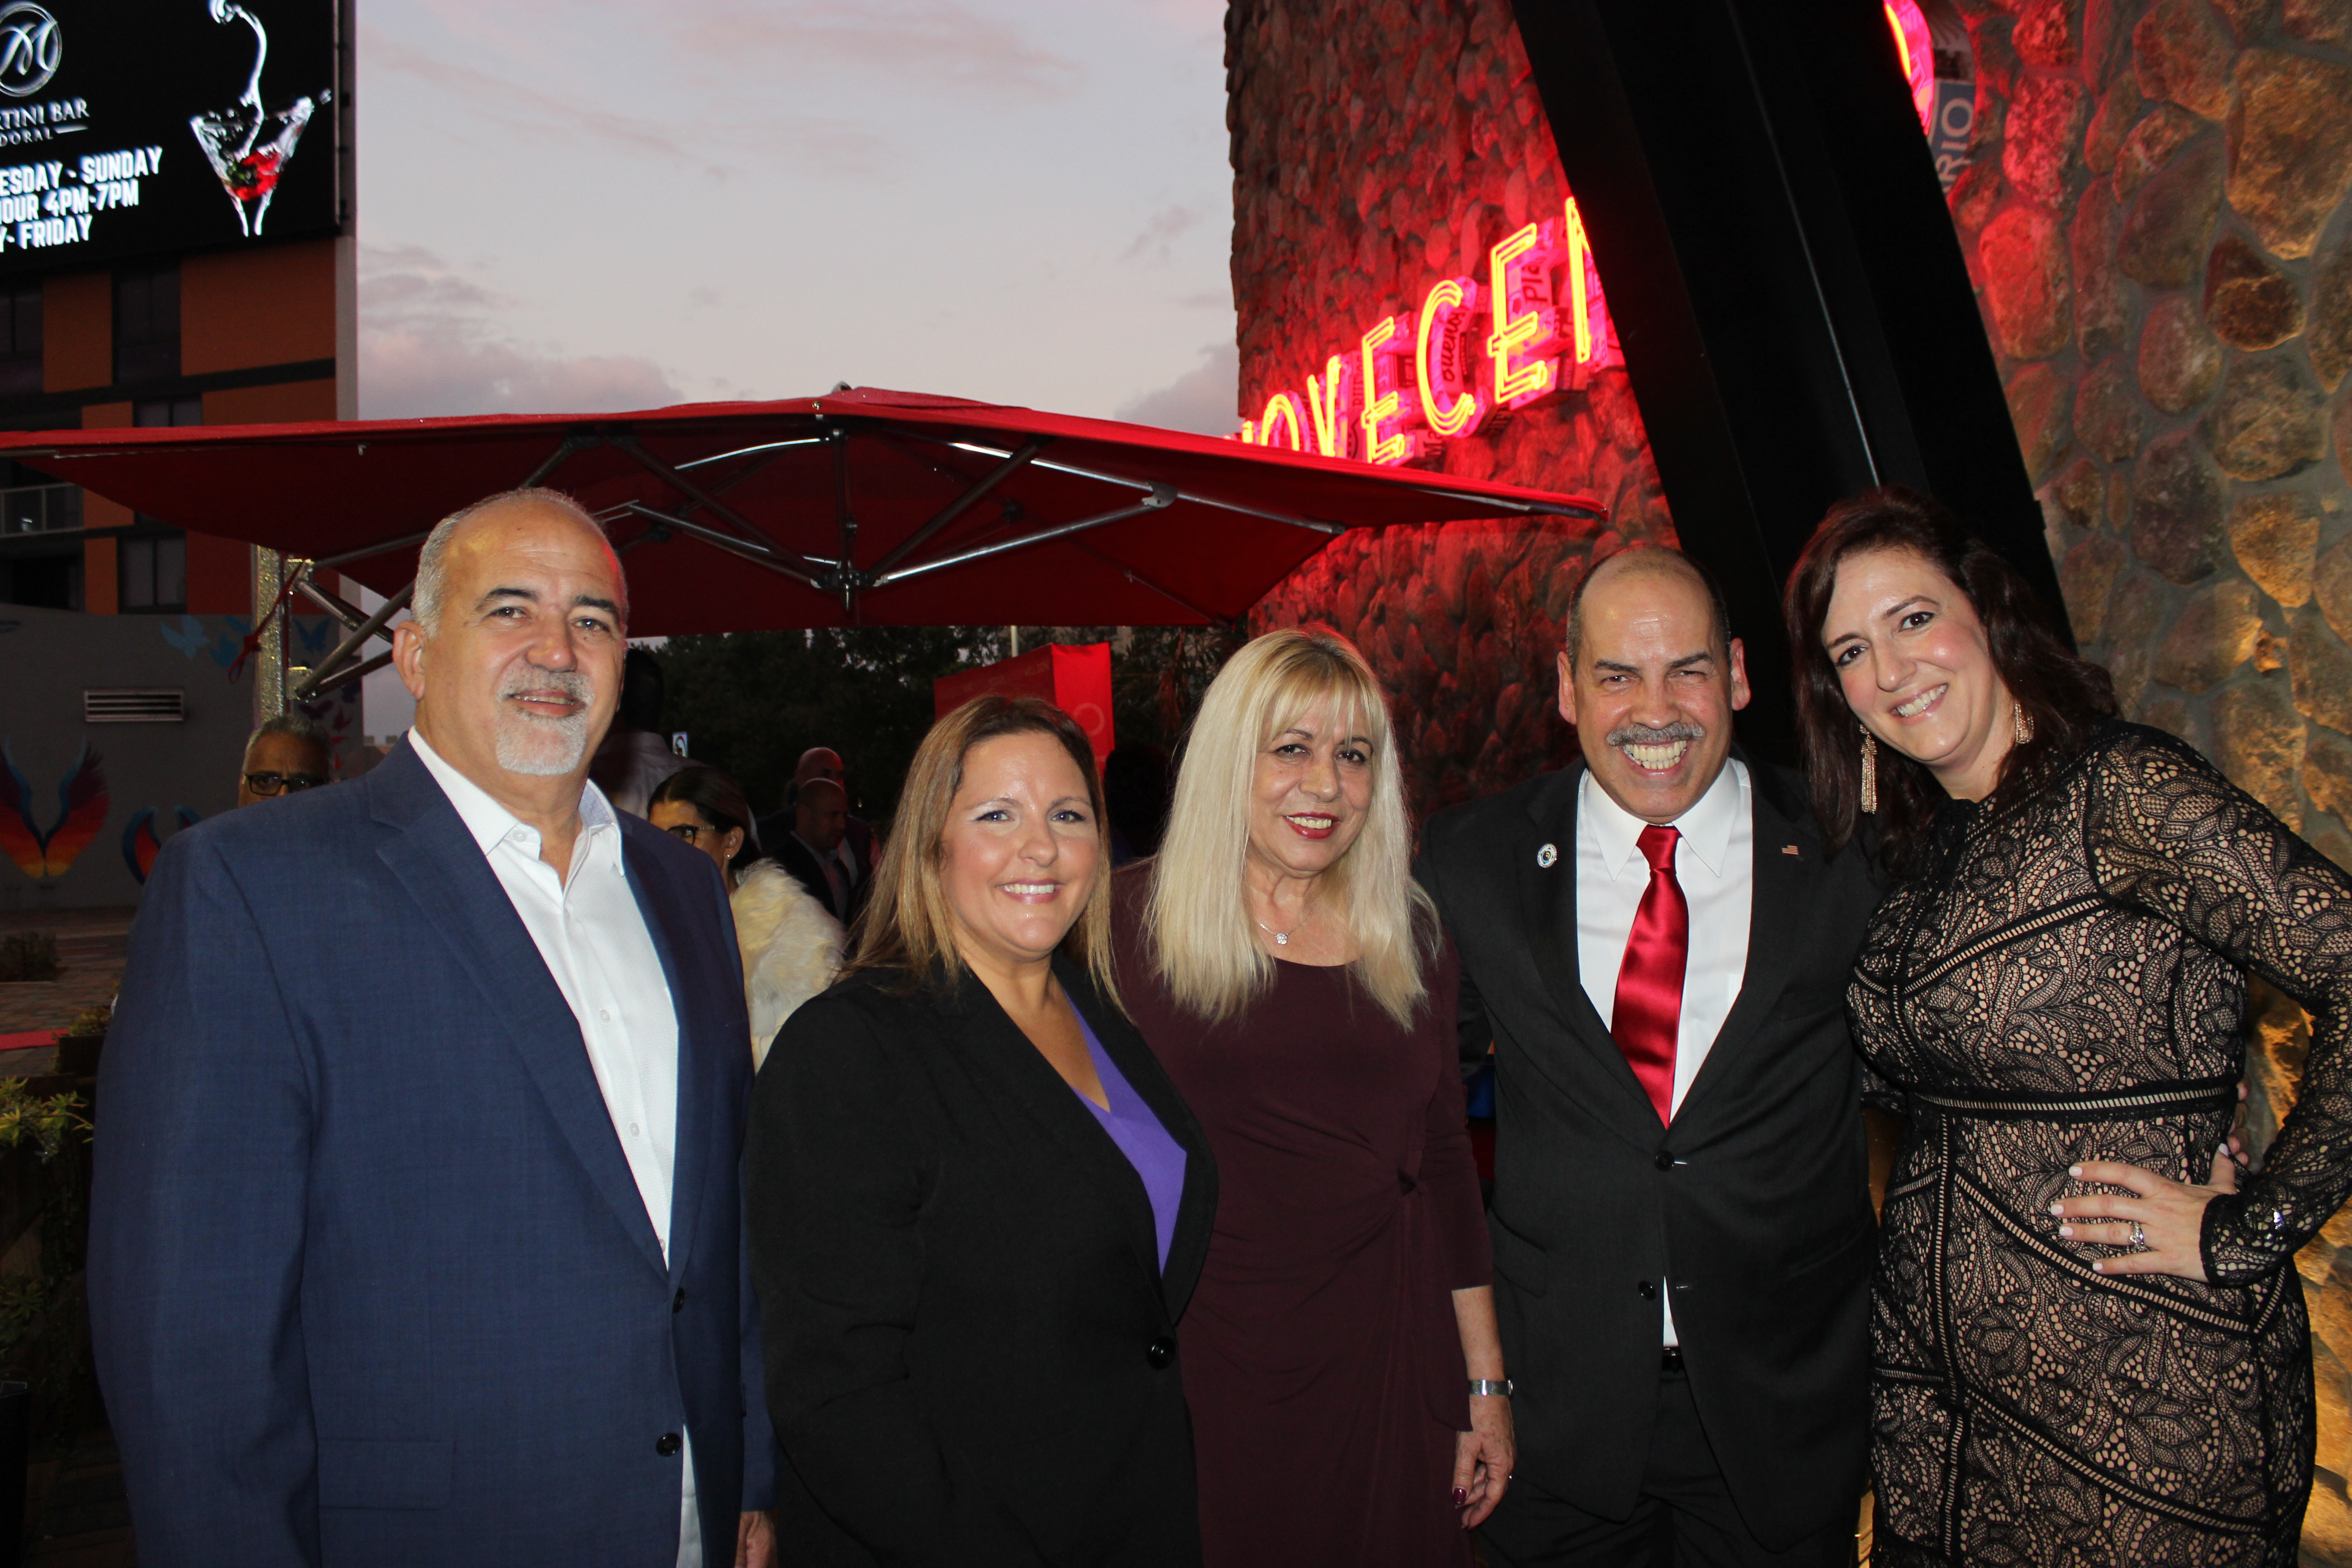 Doral Chamber of Commerce introduces Novecento Grand Opening group photo with Manny Sarmiento.